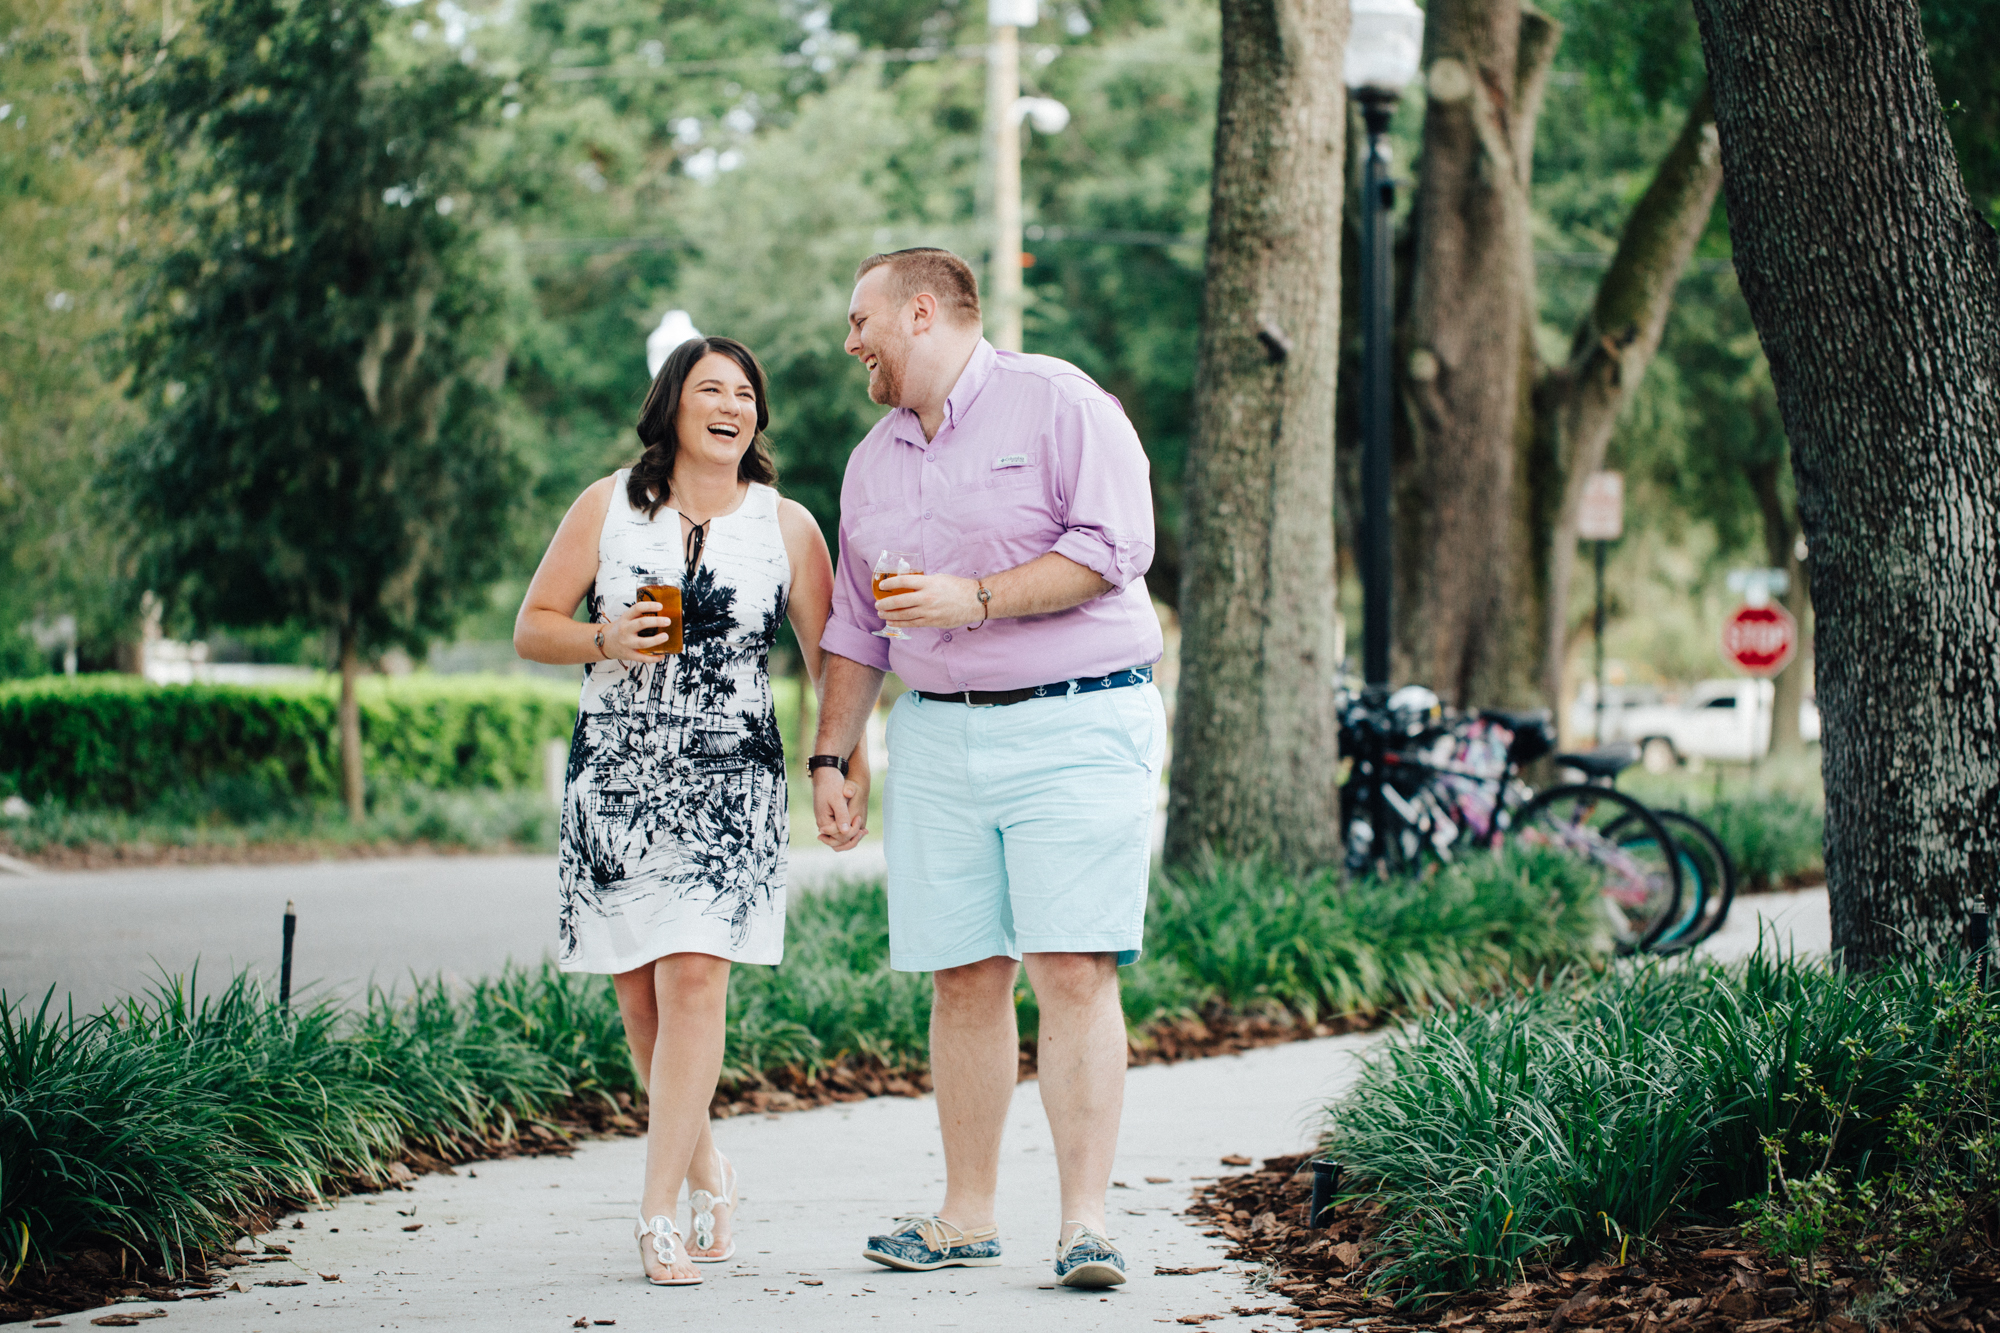 Winter Garden Engagement Photographer-8.jpg